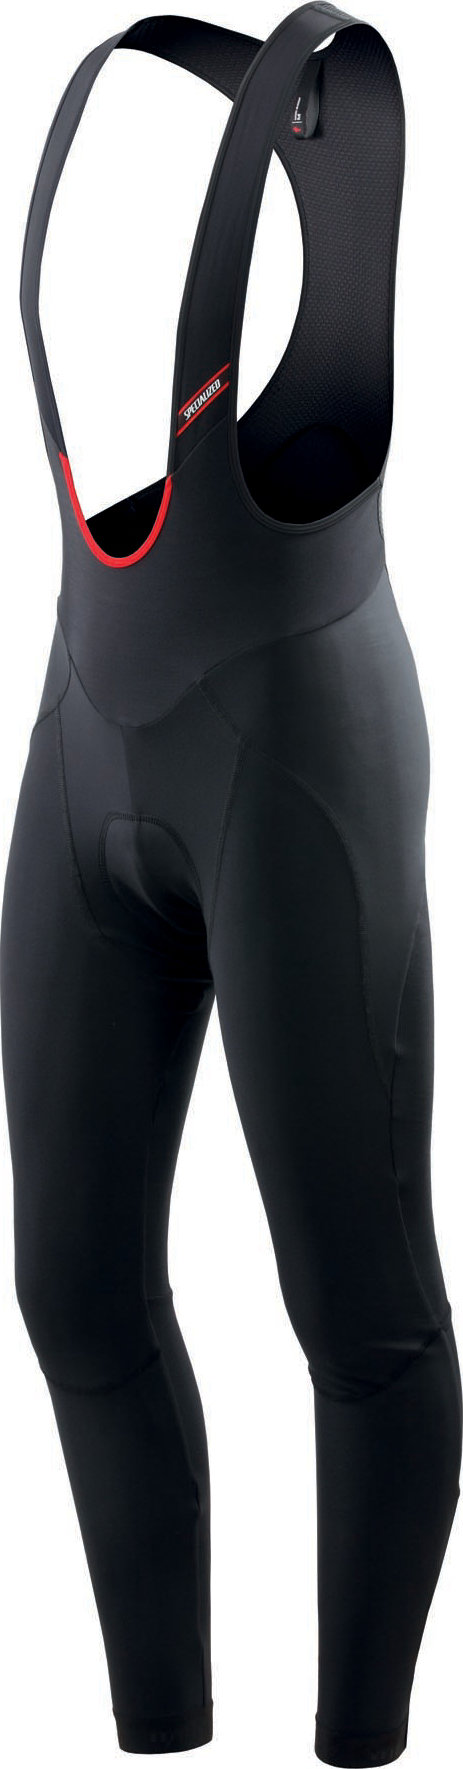 Specialized Element SL Elite bib tight Black Large - Alpha Bikes